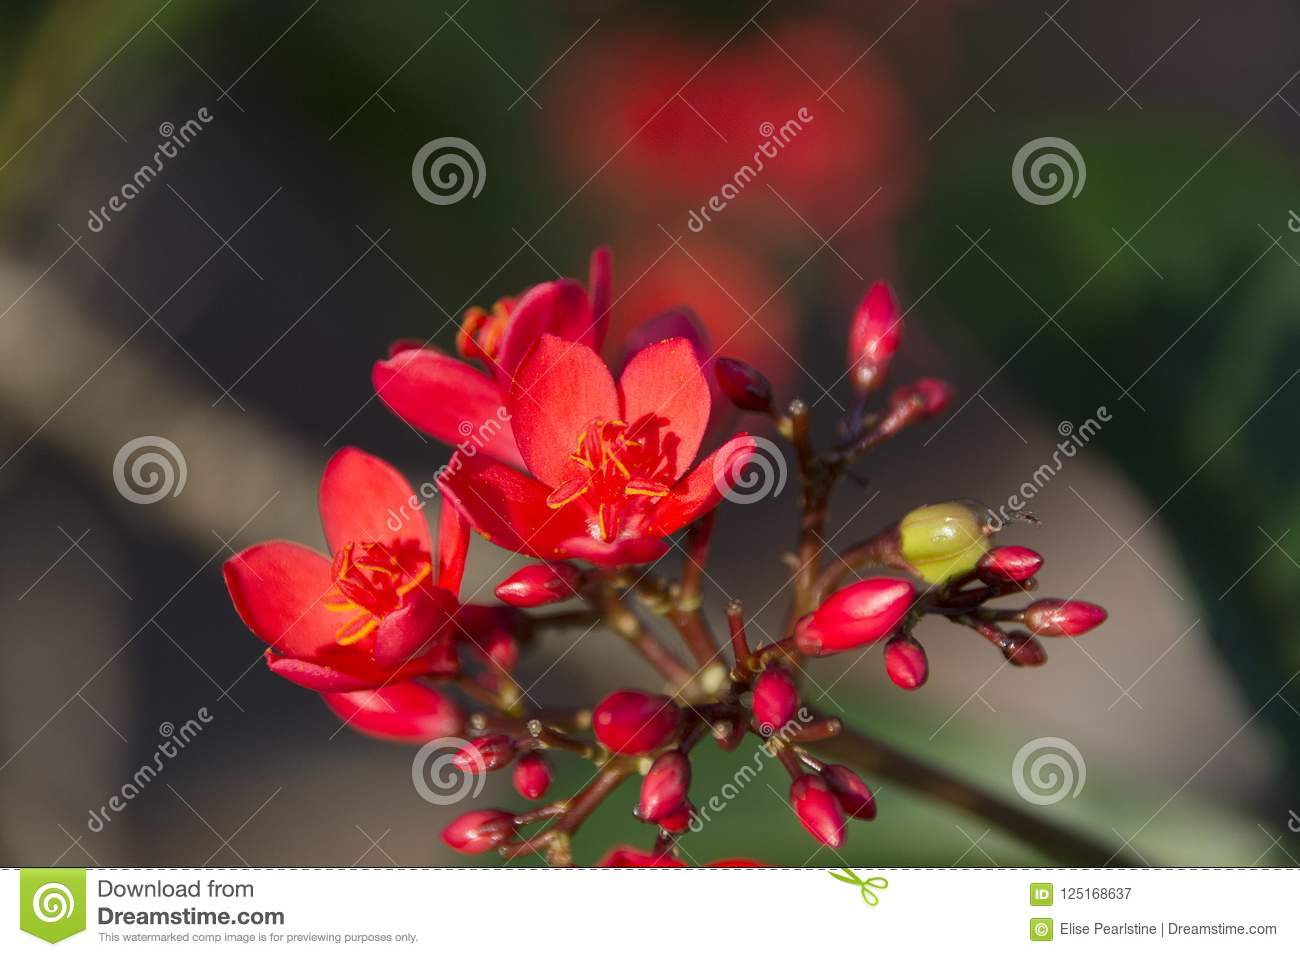 Red Flowers Of The Jatropha Tree With Buds And Yellow Stamens Stock